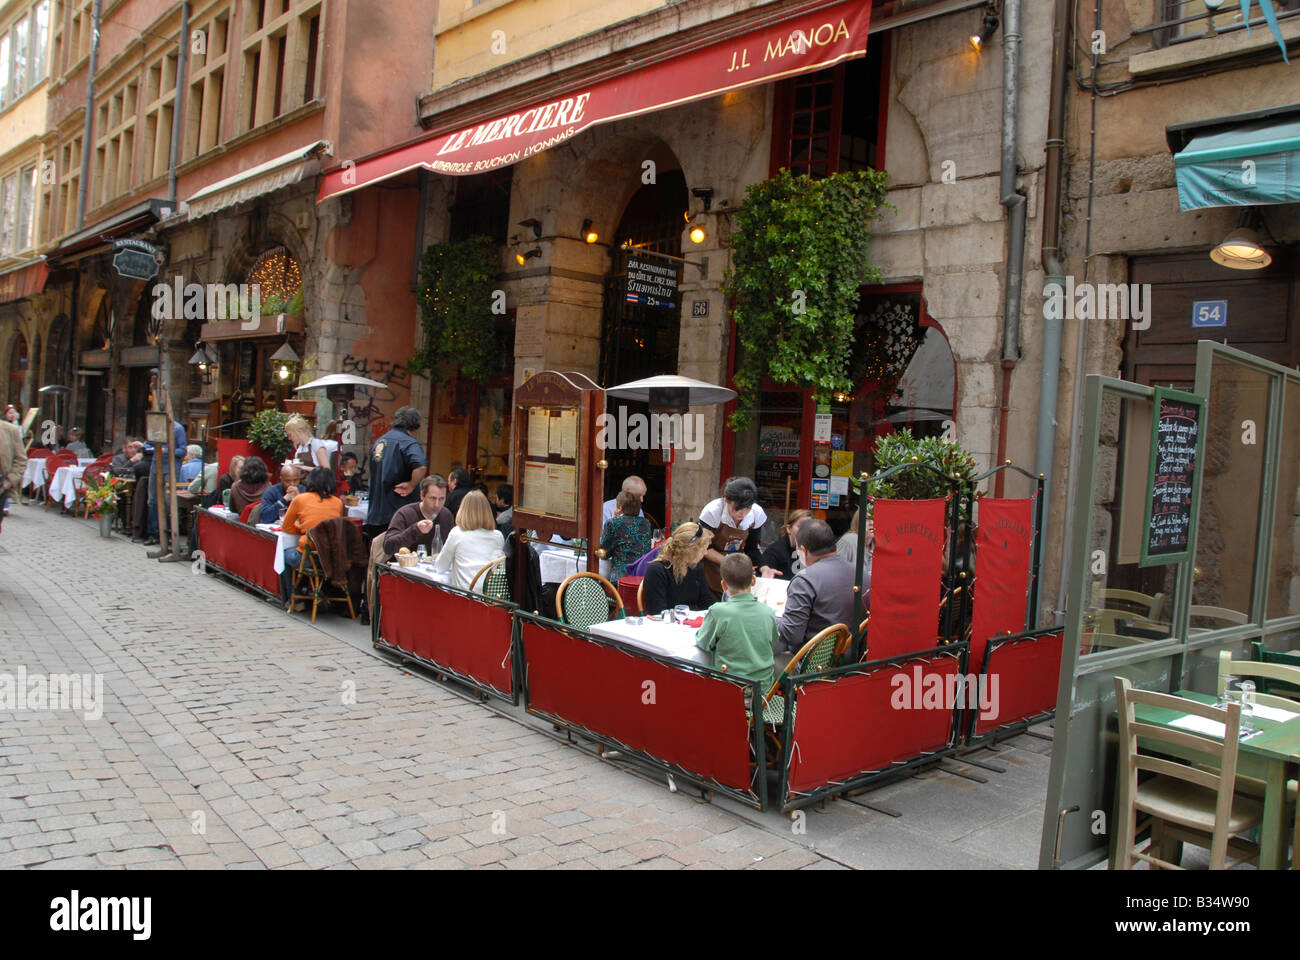 A busy lunch time scene on Rue Merciere in the old town of Lyon, France. - Stock Image